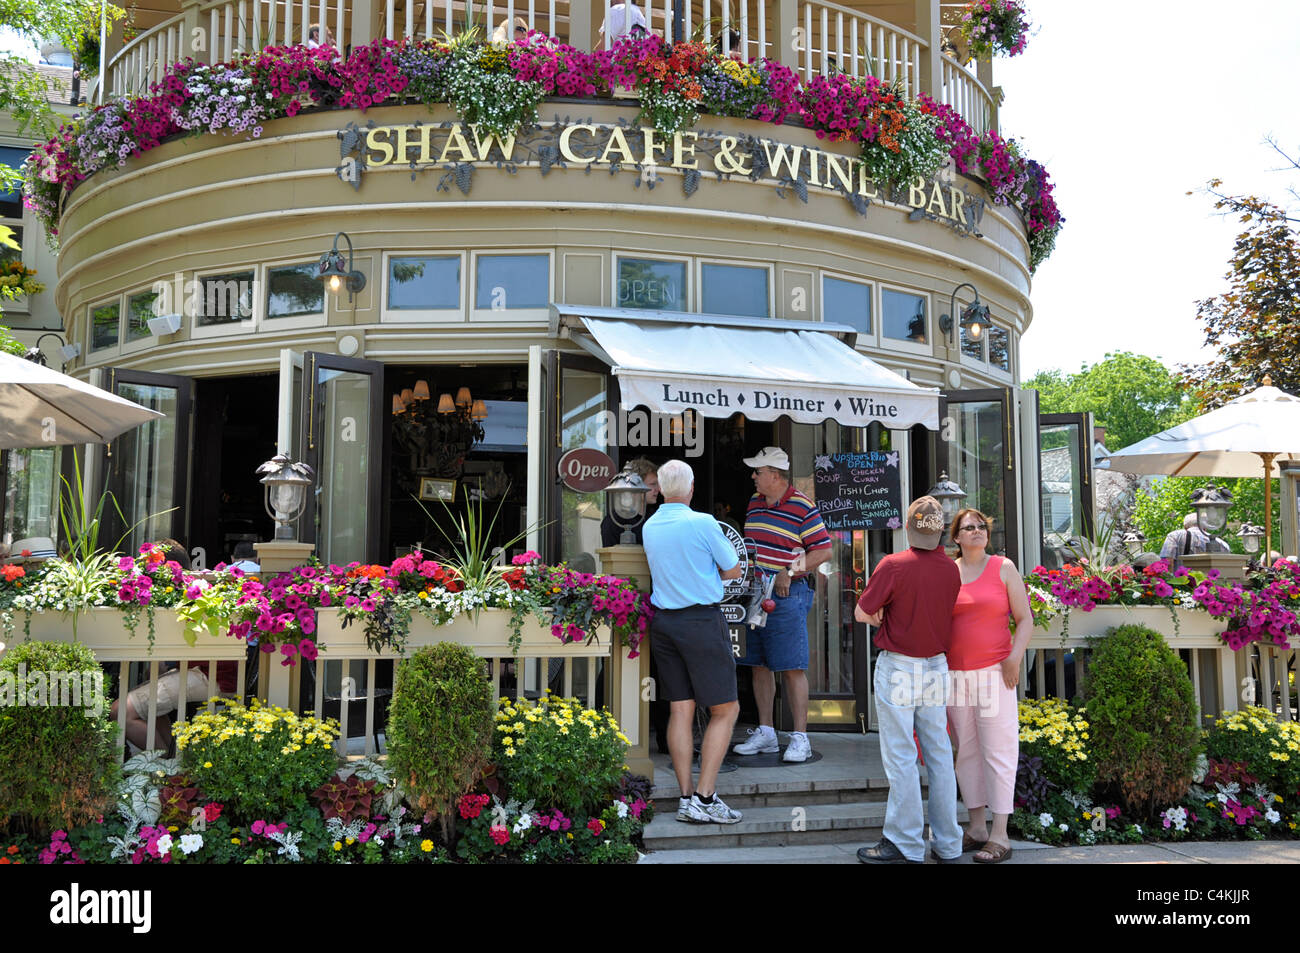 Niagara on the Lake, Shaw Cafe and Wine Bar - Stock Image